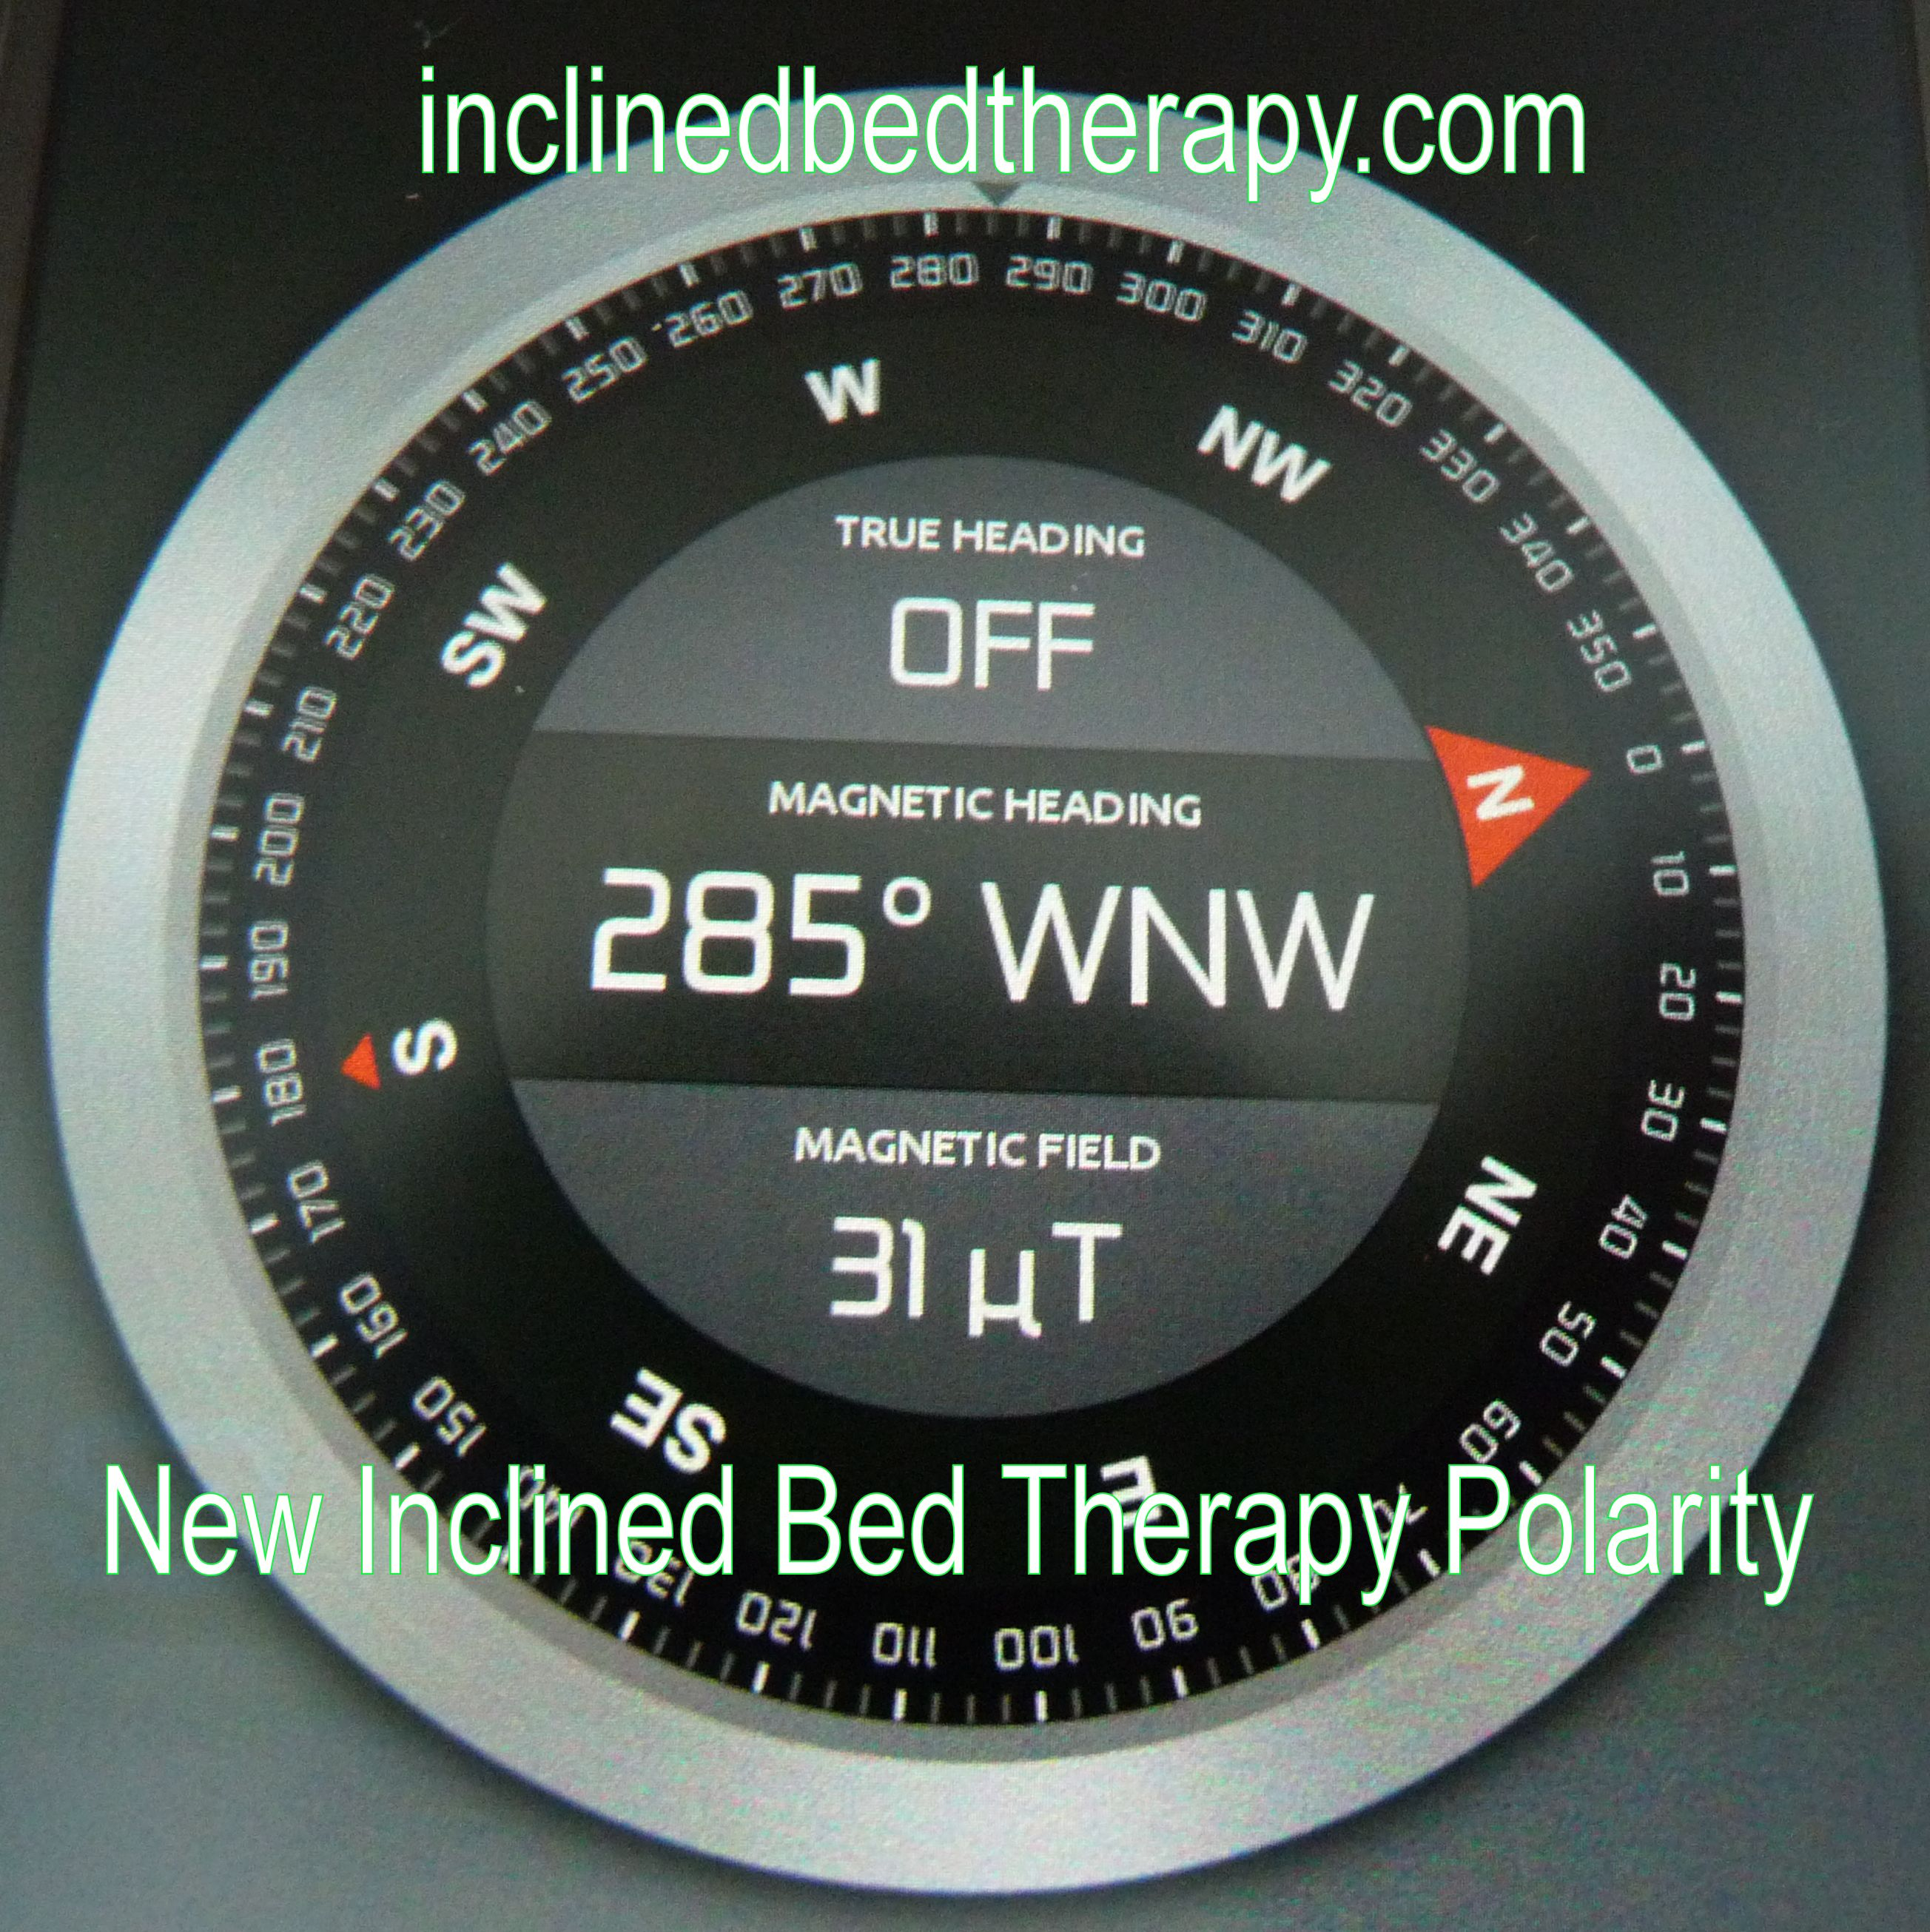 new_inclined_bed_therapy_magnetic_direction.jpg - 952.47 kB